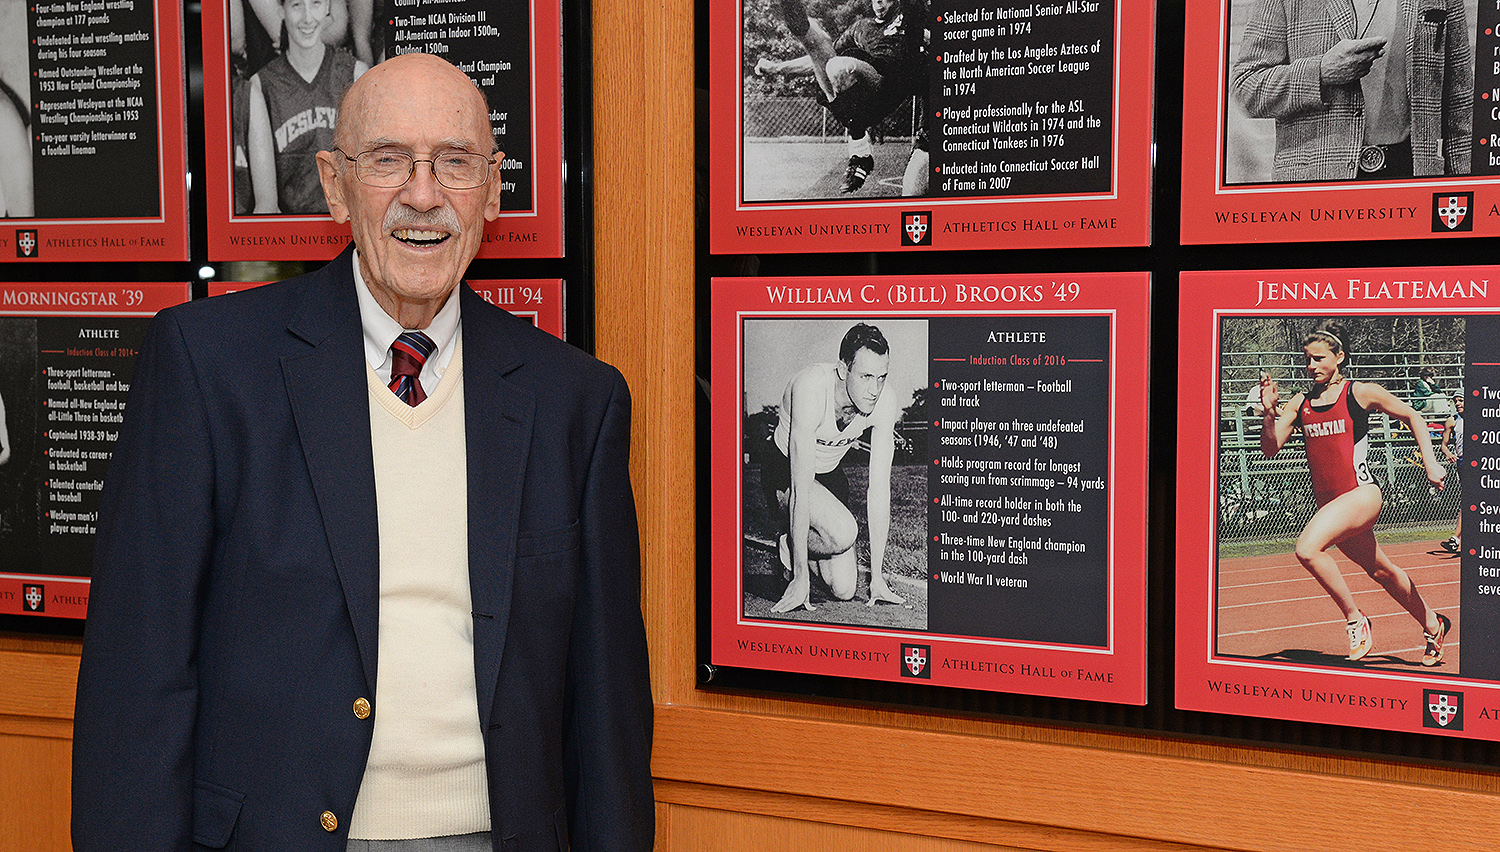 Bill Brooks '49, P '71 was a dual-sport athlete at Wesleyan, excelling in both football and track. On the football field, he played an integral role in three consecutive undefeated seasons; 1946 (7-0), '47 (7-0) and '48 (8-0). He played running back for the Cardinals and holds the program record for longest scoring run from scrimmage, in which he ran 94 yards against Swarthmore in 1947. Additionally, Brooks achieved great success on the track and is Wesleyan's all-time record holder in both the 100 and 220-yard runs, crossing the finish line in :09.7 and :23.3, respectively.